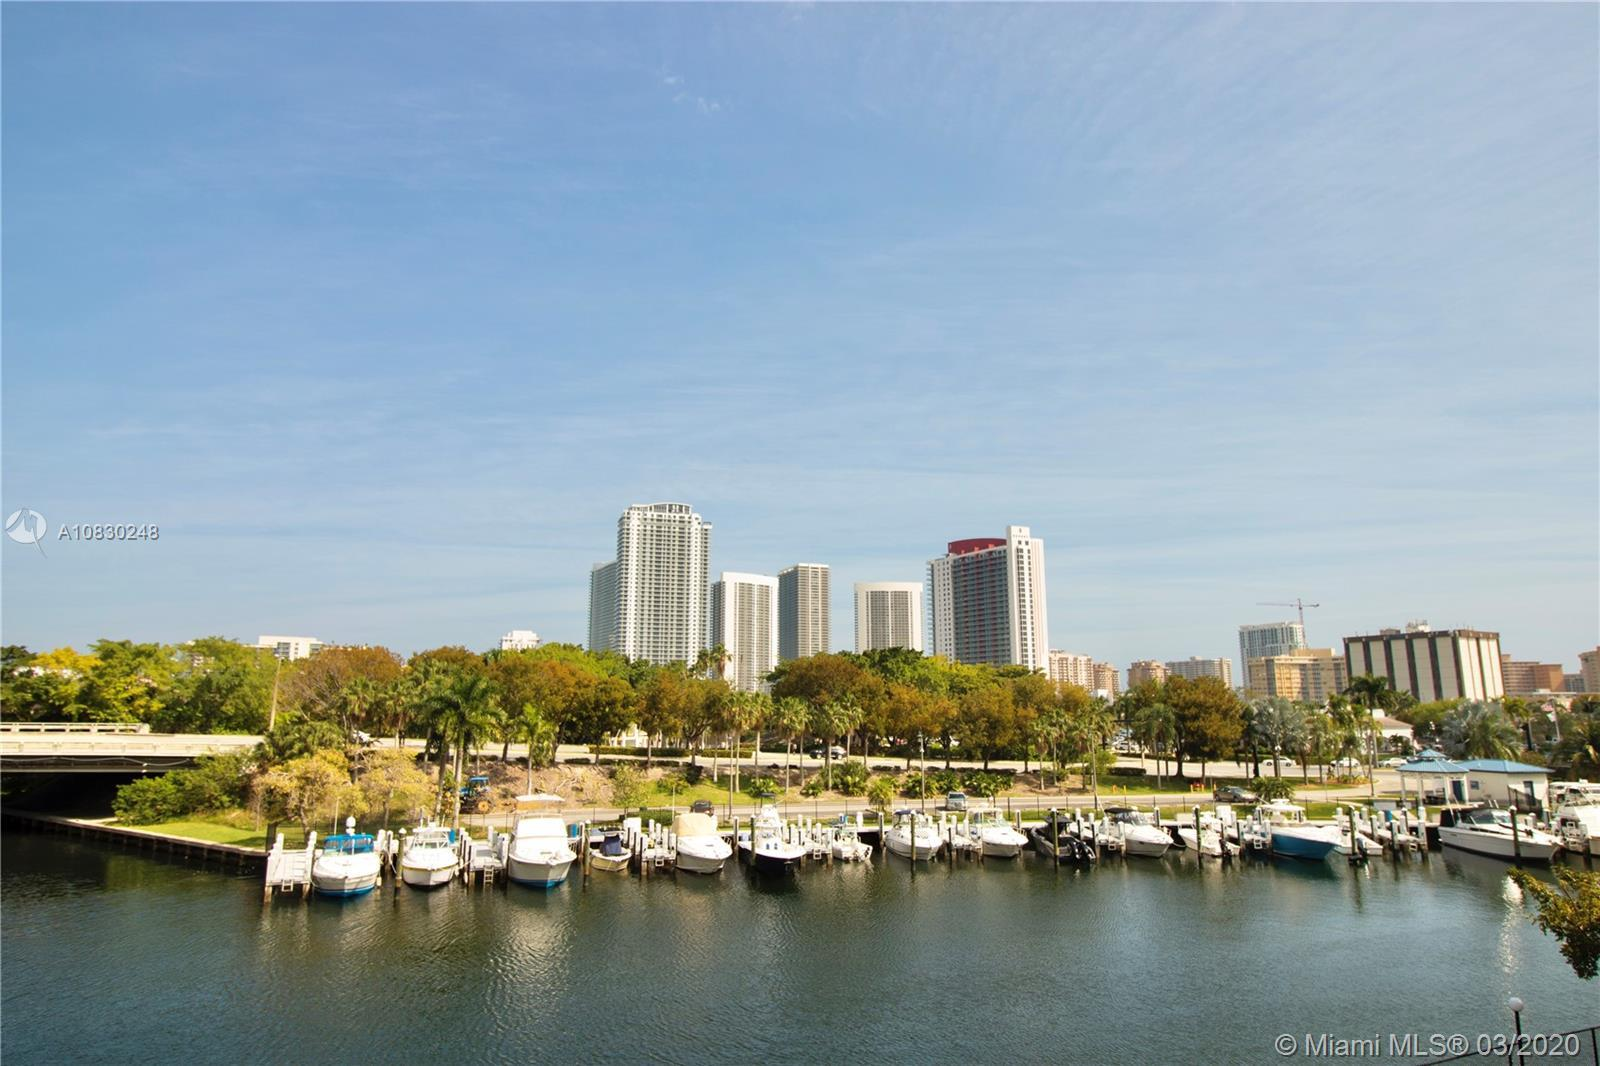 MAGNIFICENT LARGE & BRIGHT 2 BED/2 BATH OPEN CONCEPT SPLIT FLOOR PLAN OVERLOOKING CANAL & MARINA IN